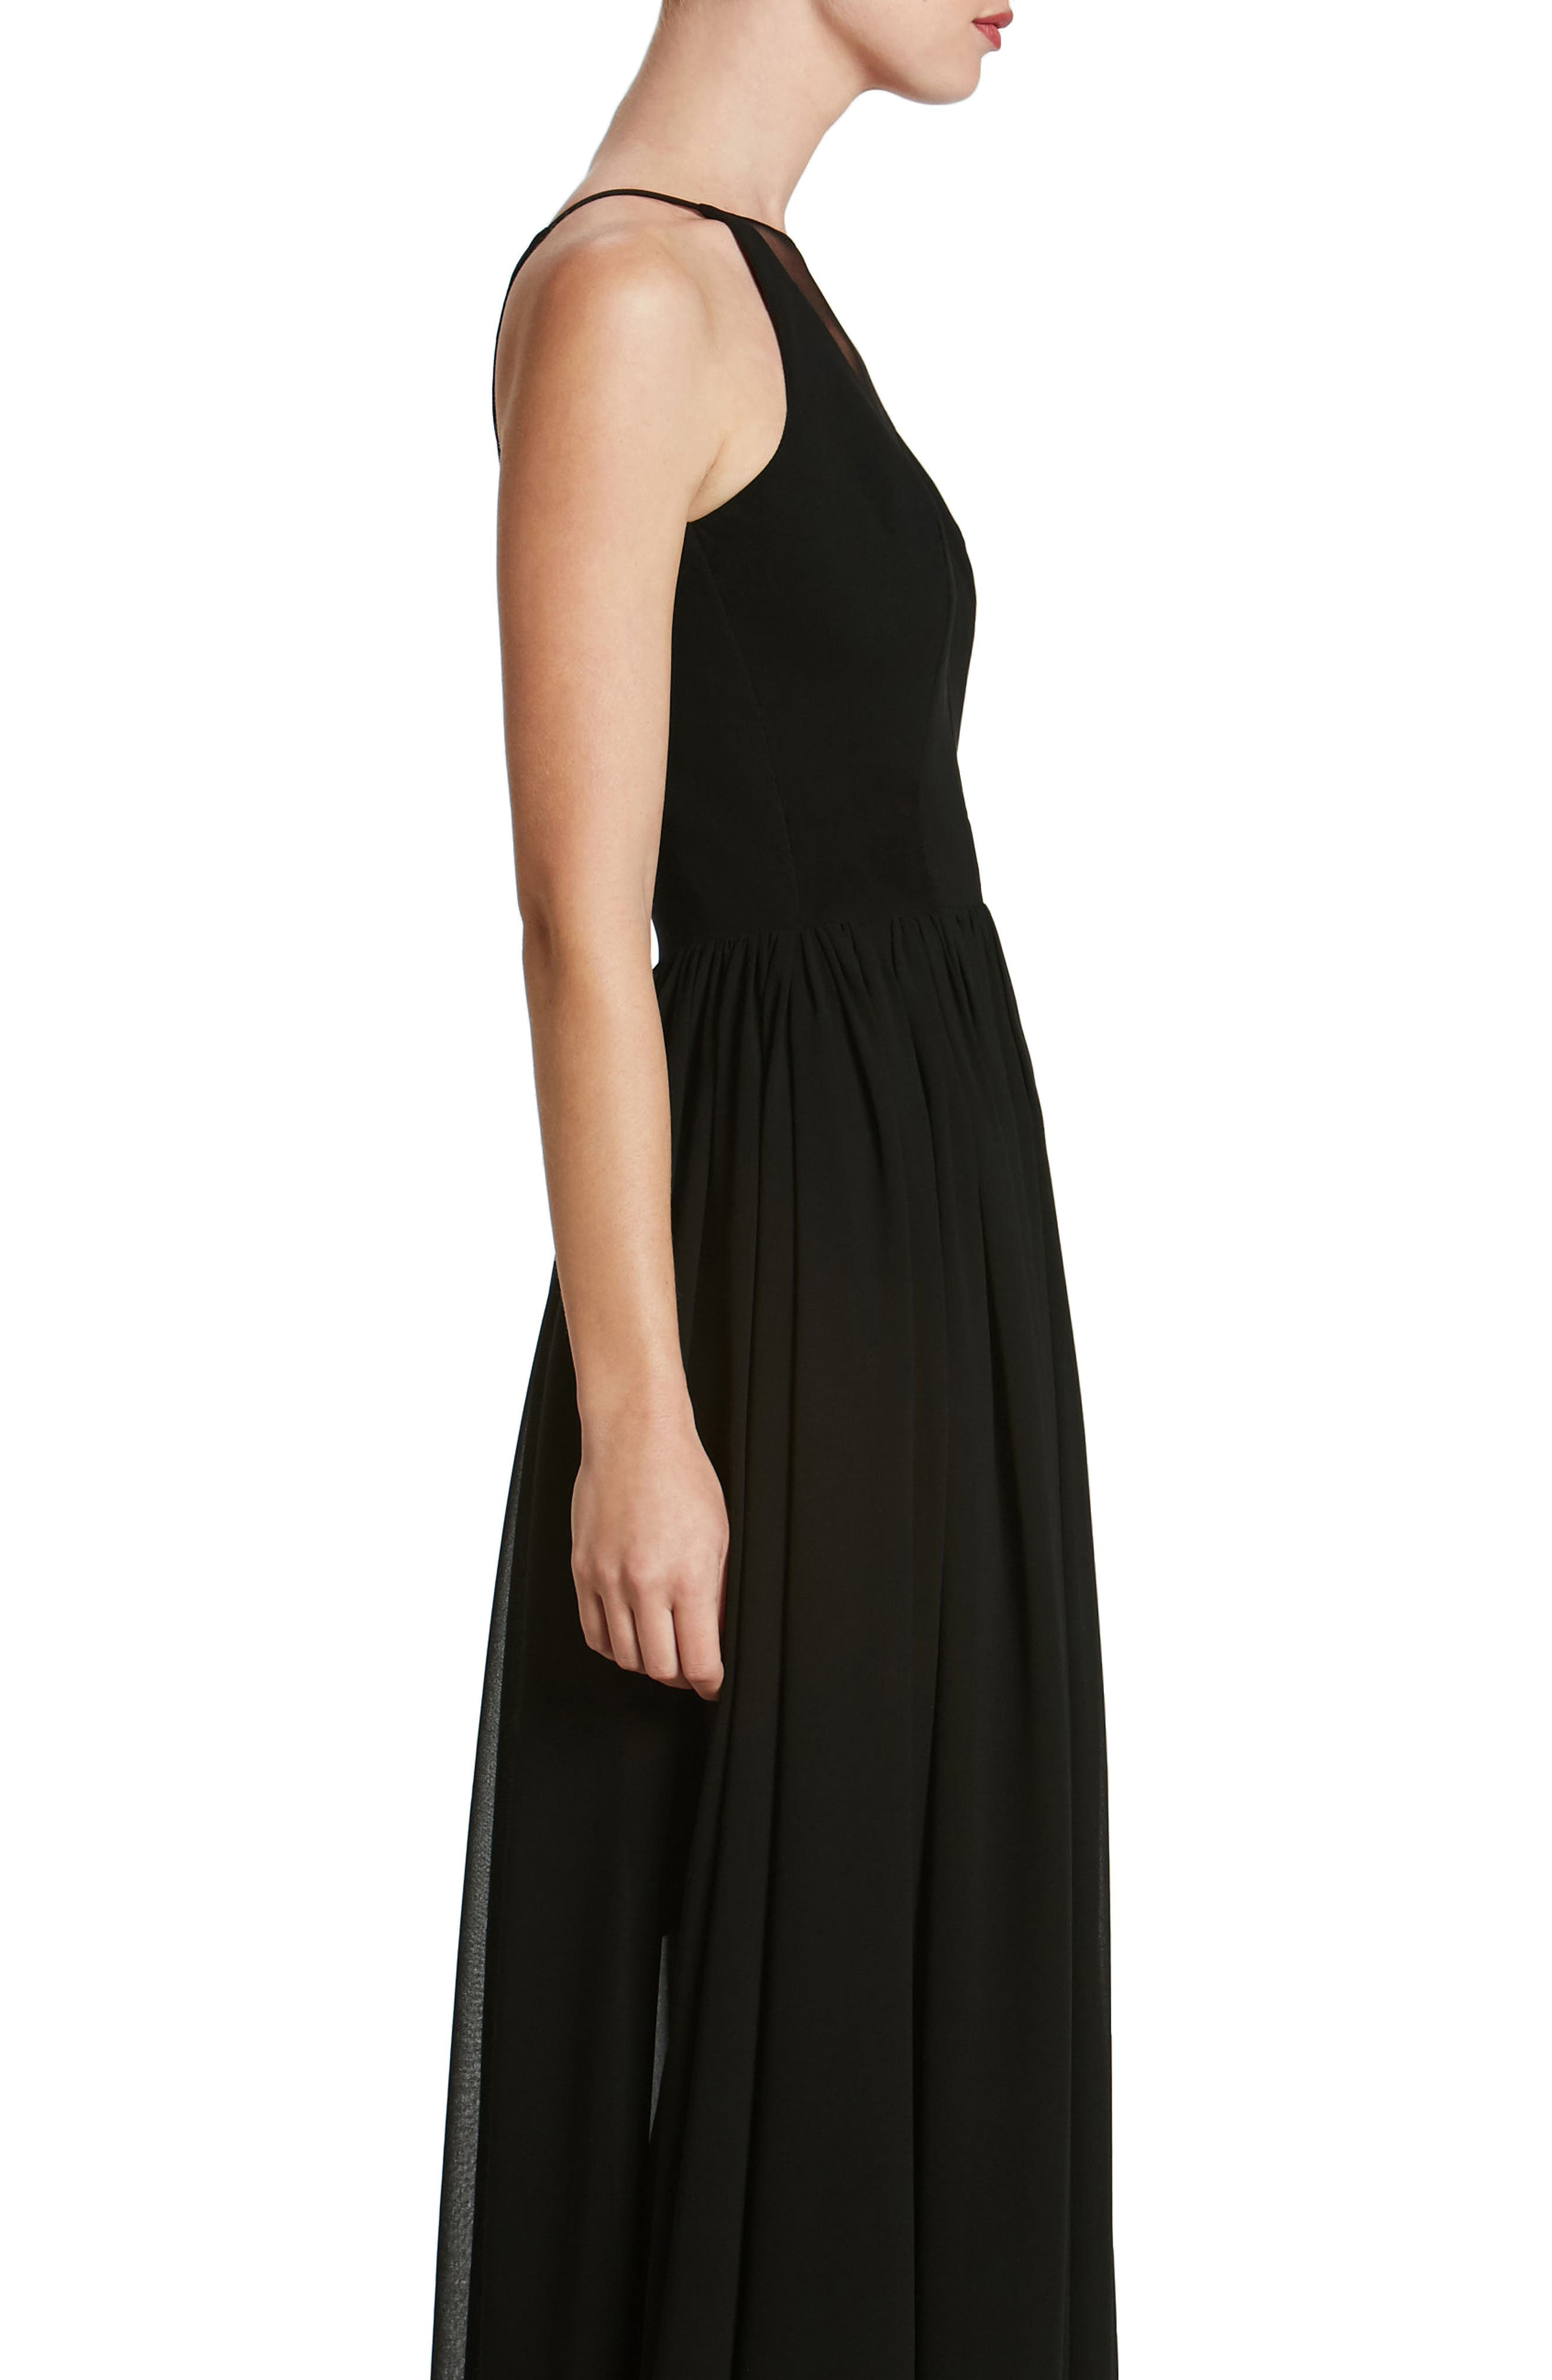 Patricia Illusion Gown,                             Alternate thumbnail 3, color,                             Black